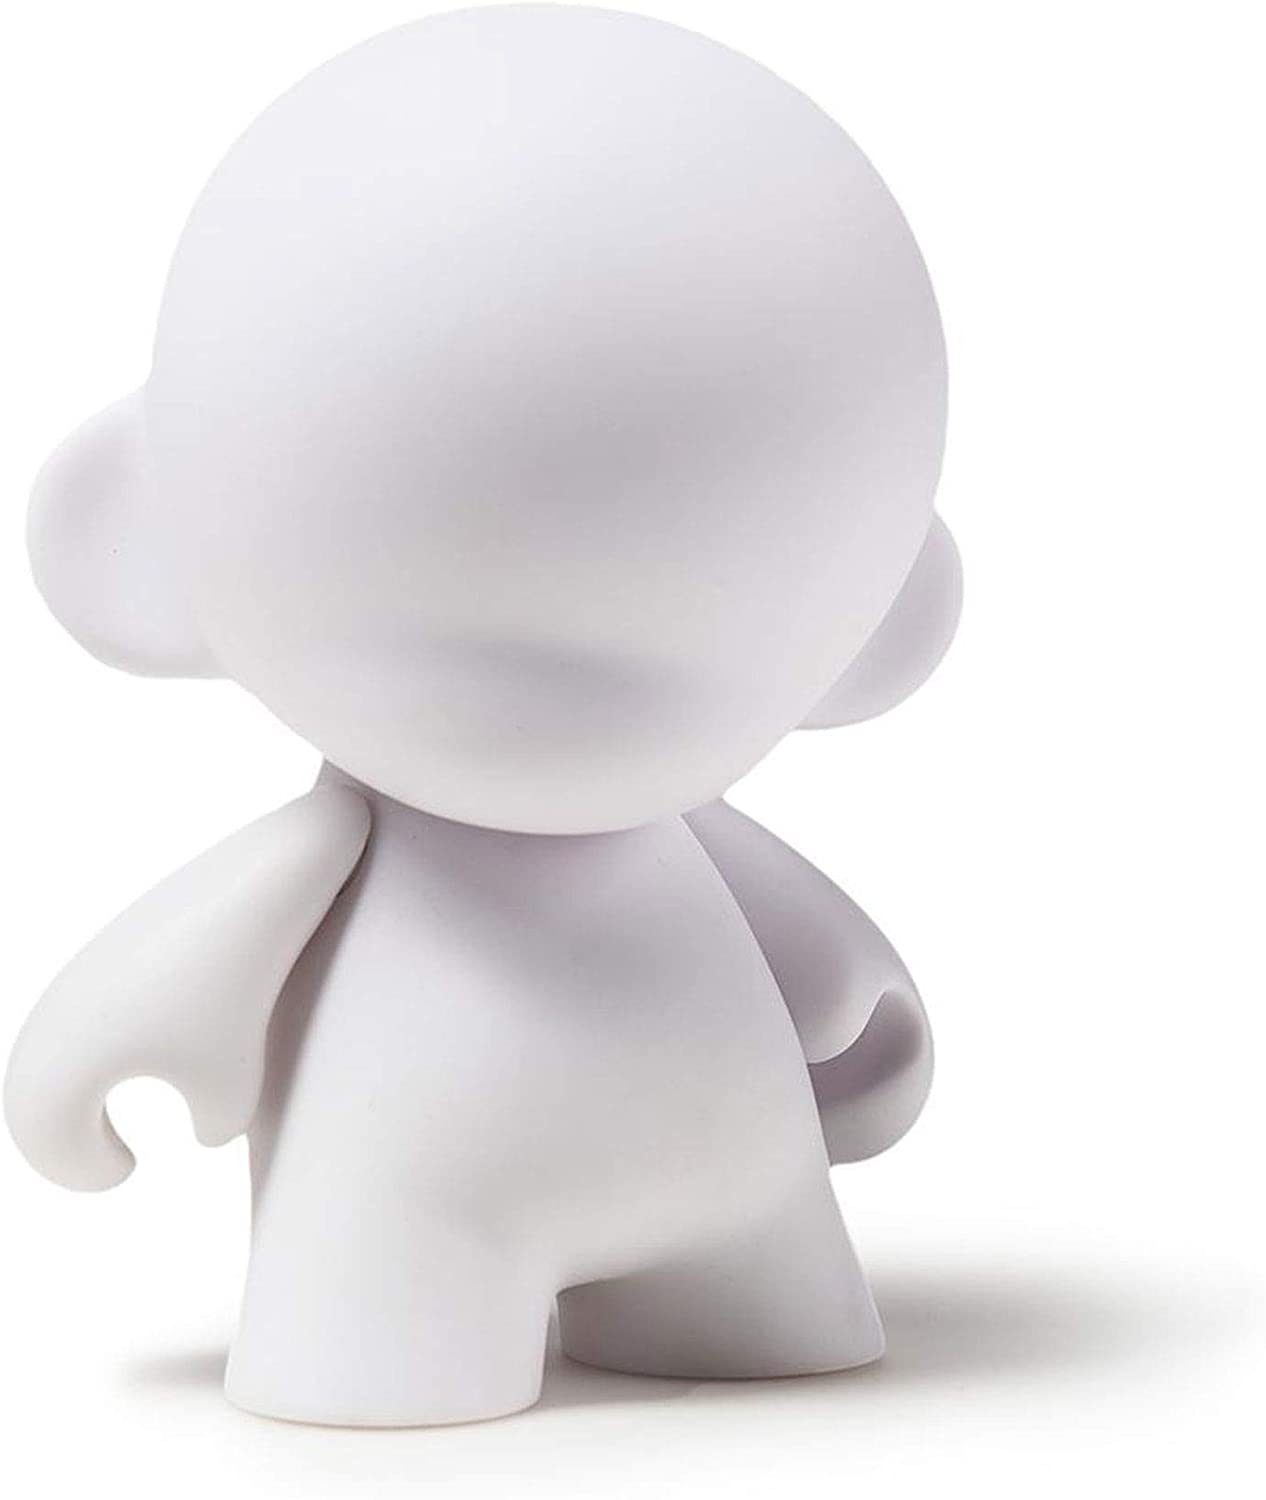 "MUNNYWORLD 7/"" MUNNY Blank Art Toy by Kidrobot"